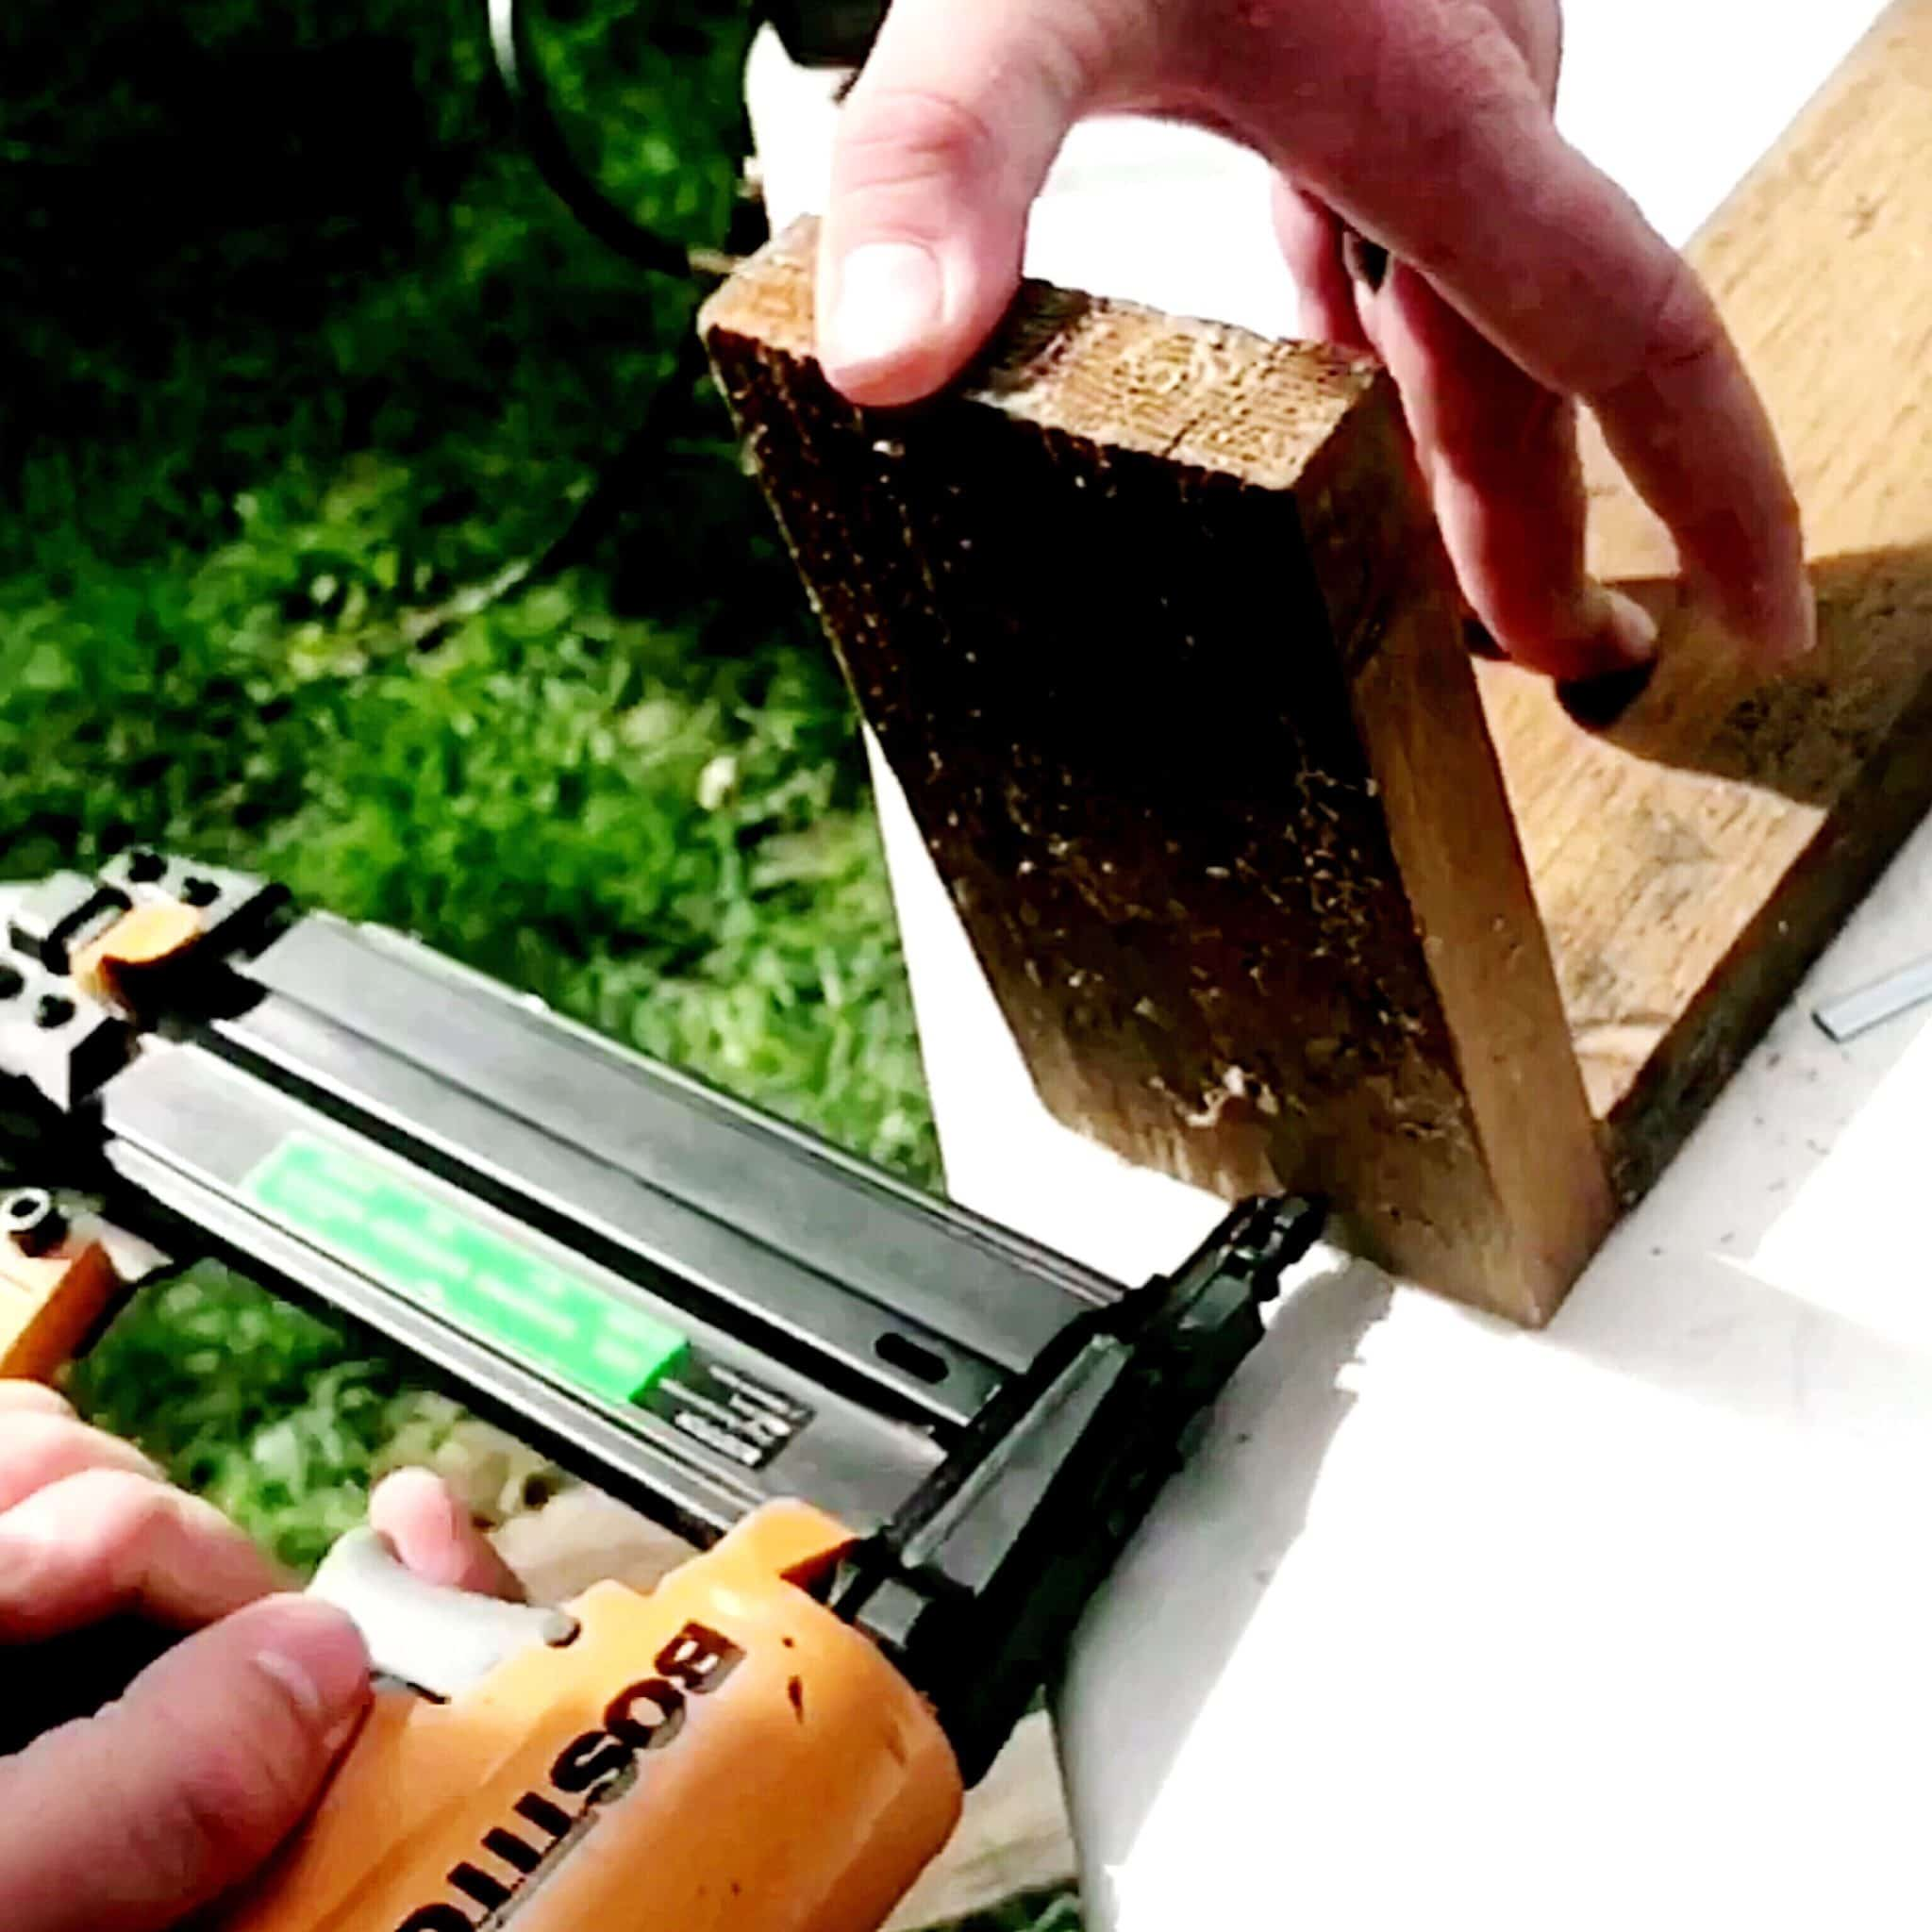 Man using nail gun to attach 2 wood piece making a diy wood planter